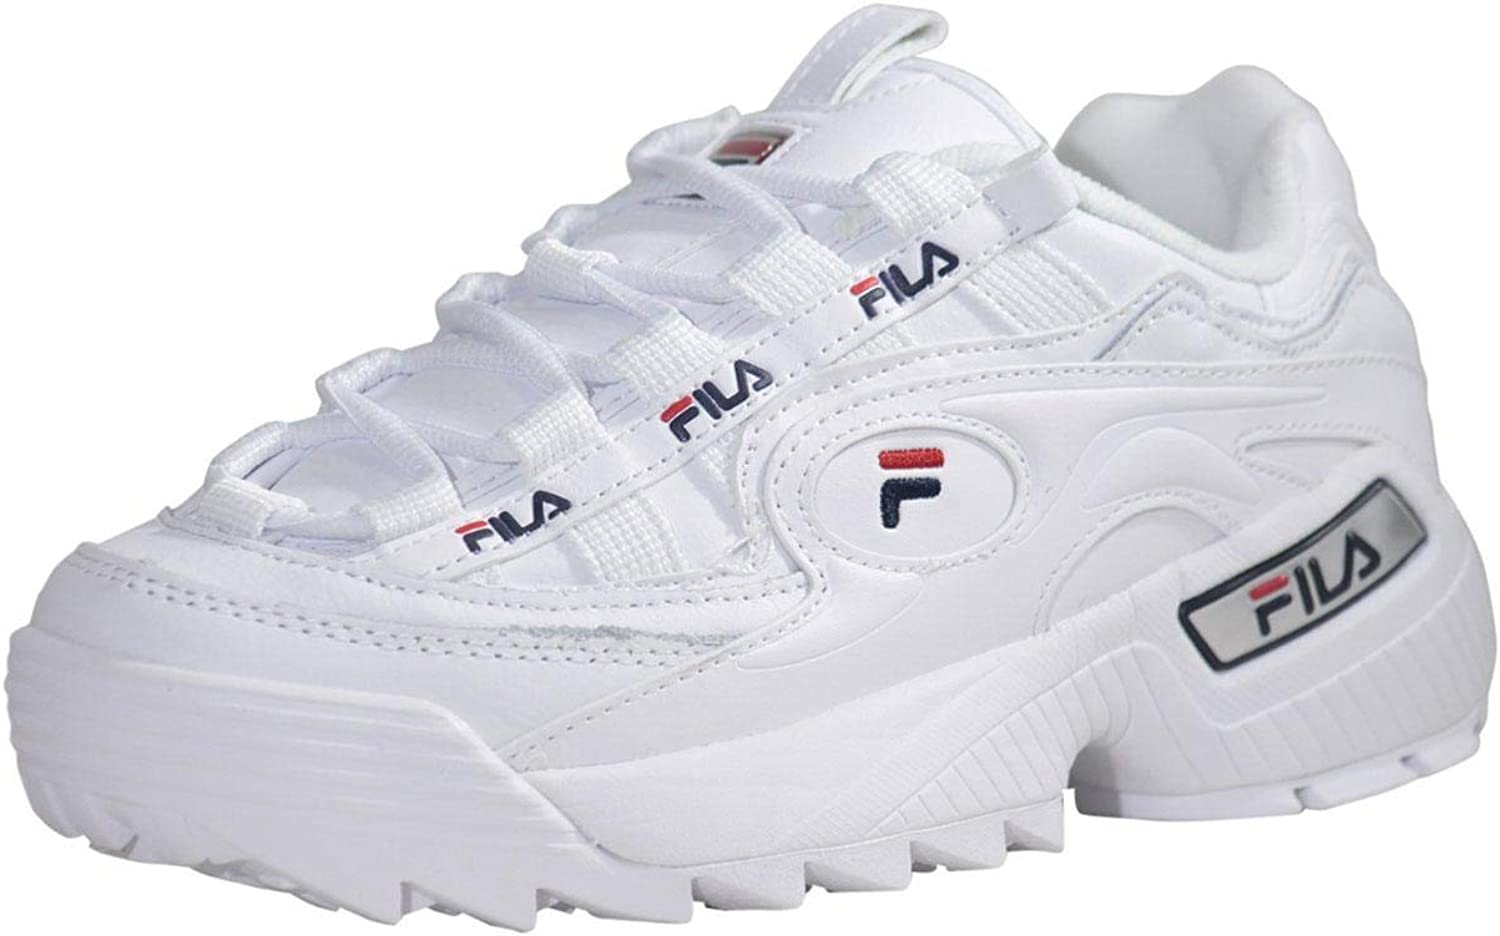 Fila D Formation Formation Formation W Schuhe  99a788